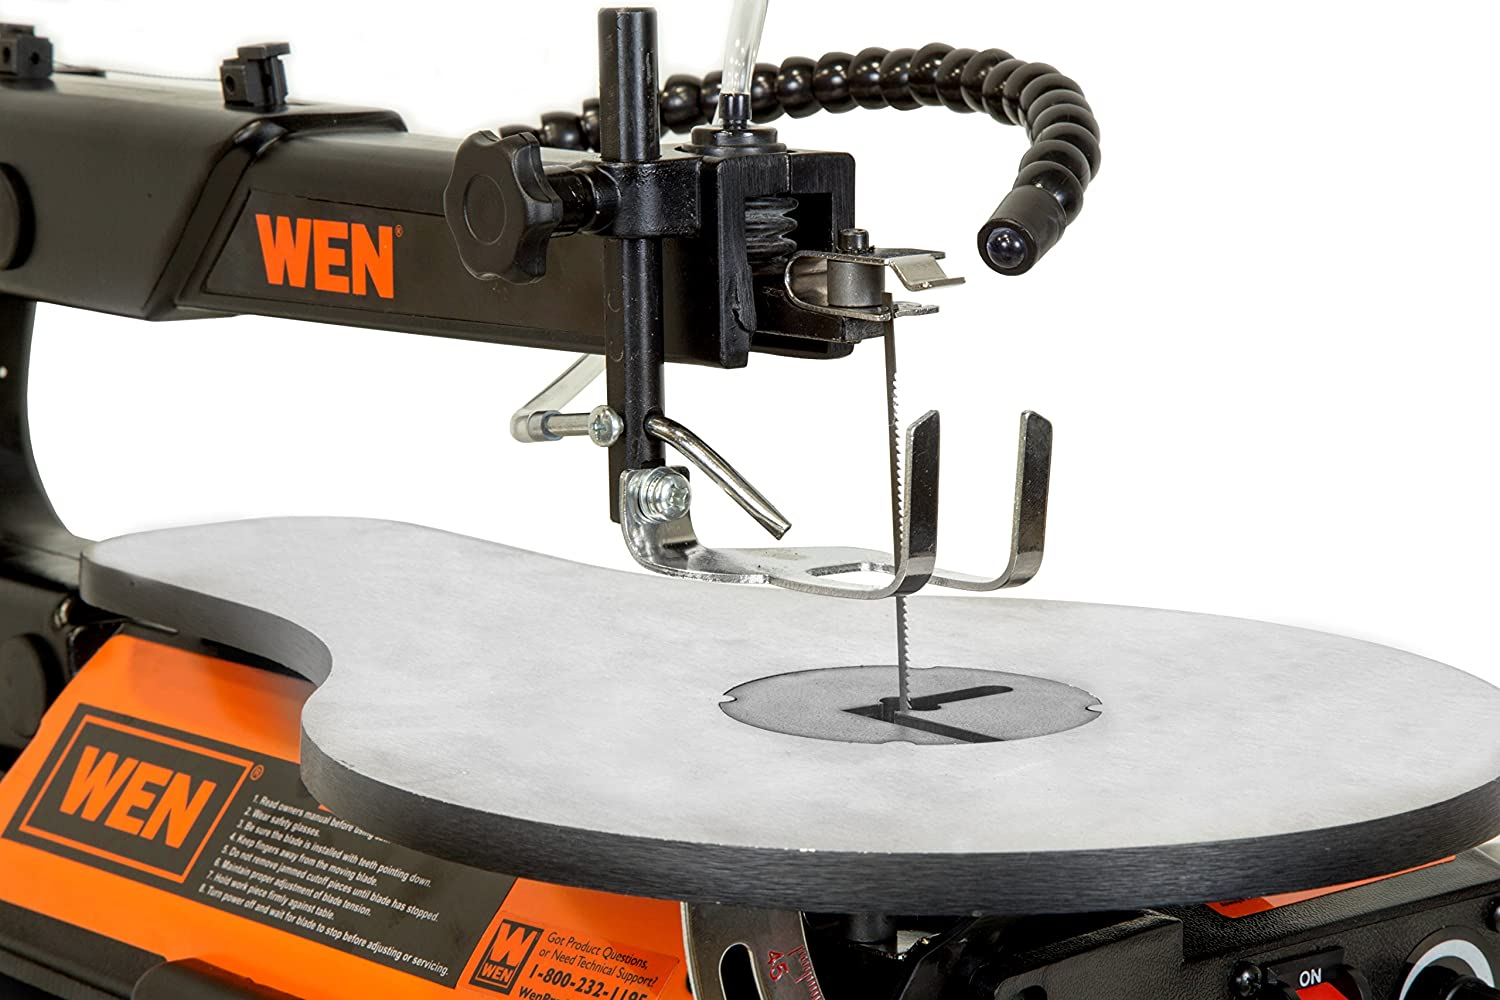 WEN 3921 Two-Direction Scroll - Best Saw for Cutting Shapes Out Of Wood